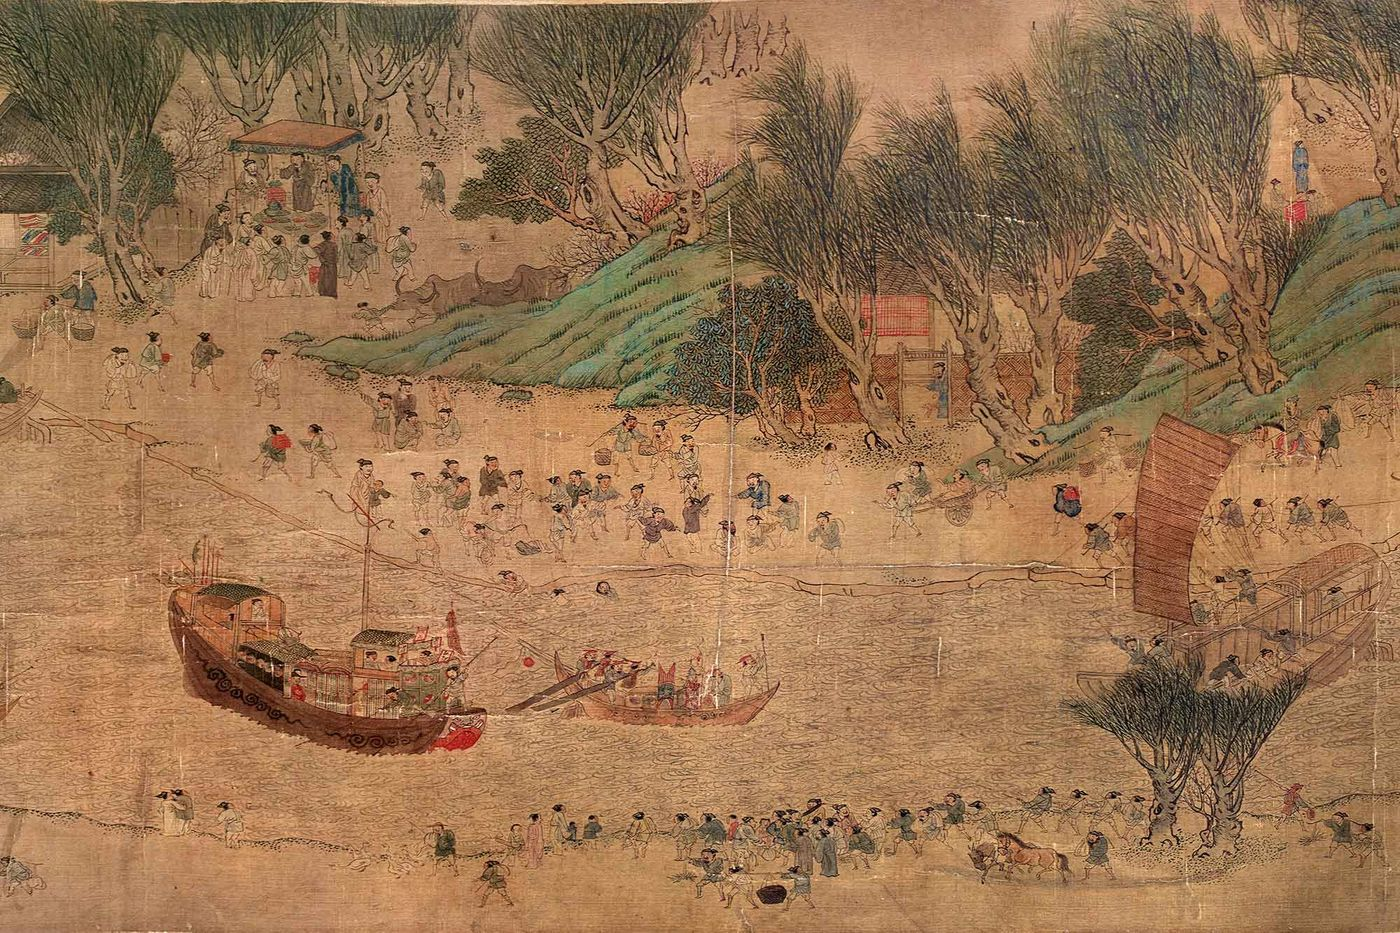 A section of the Qingming scroll depicting life and work near the Grand Canal during the Sui Dynasty (589–618 AD)